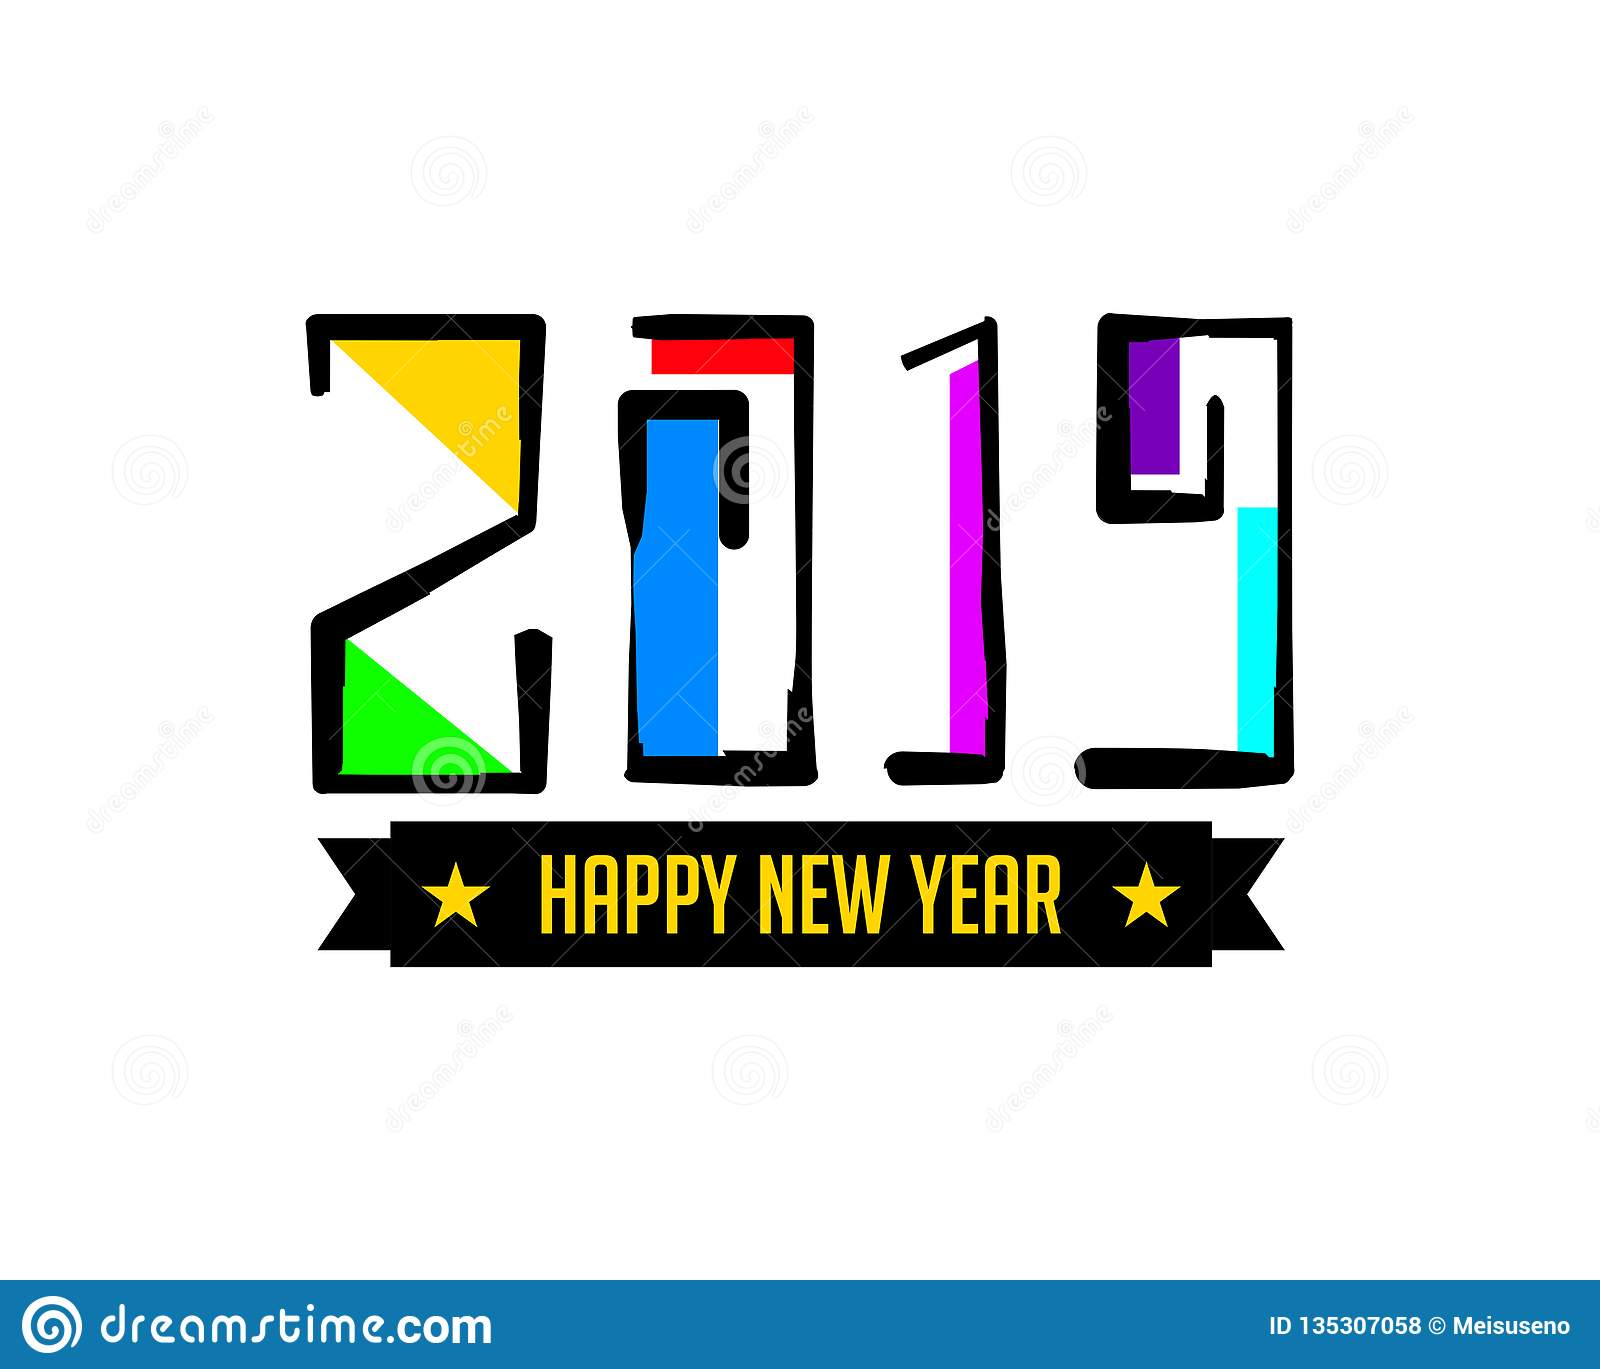 Happy new year 2019, hand lettering, vector illustration, decorative design on white background for greeting card, poster concept